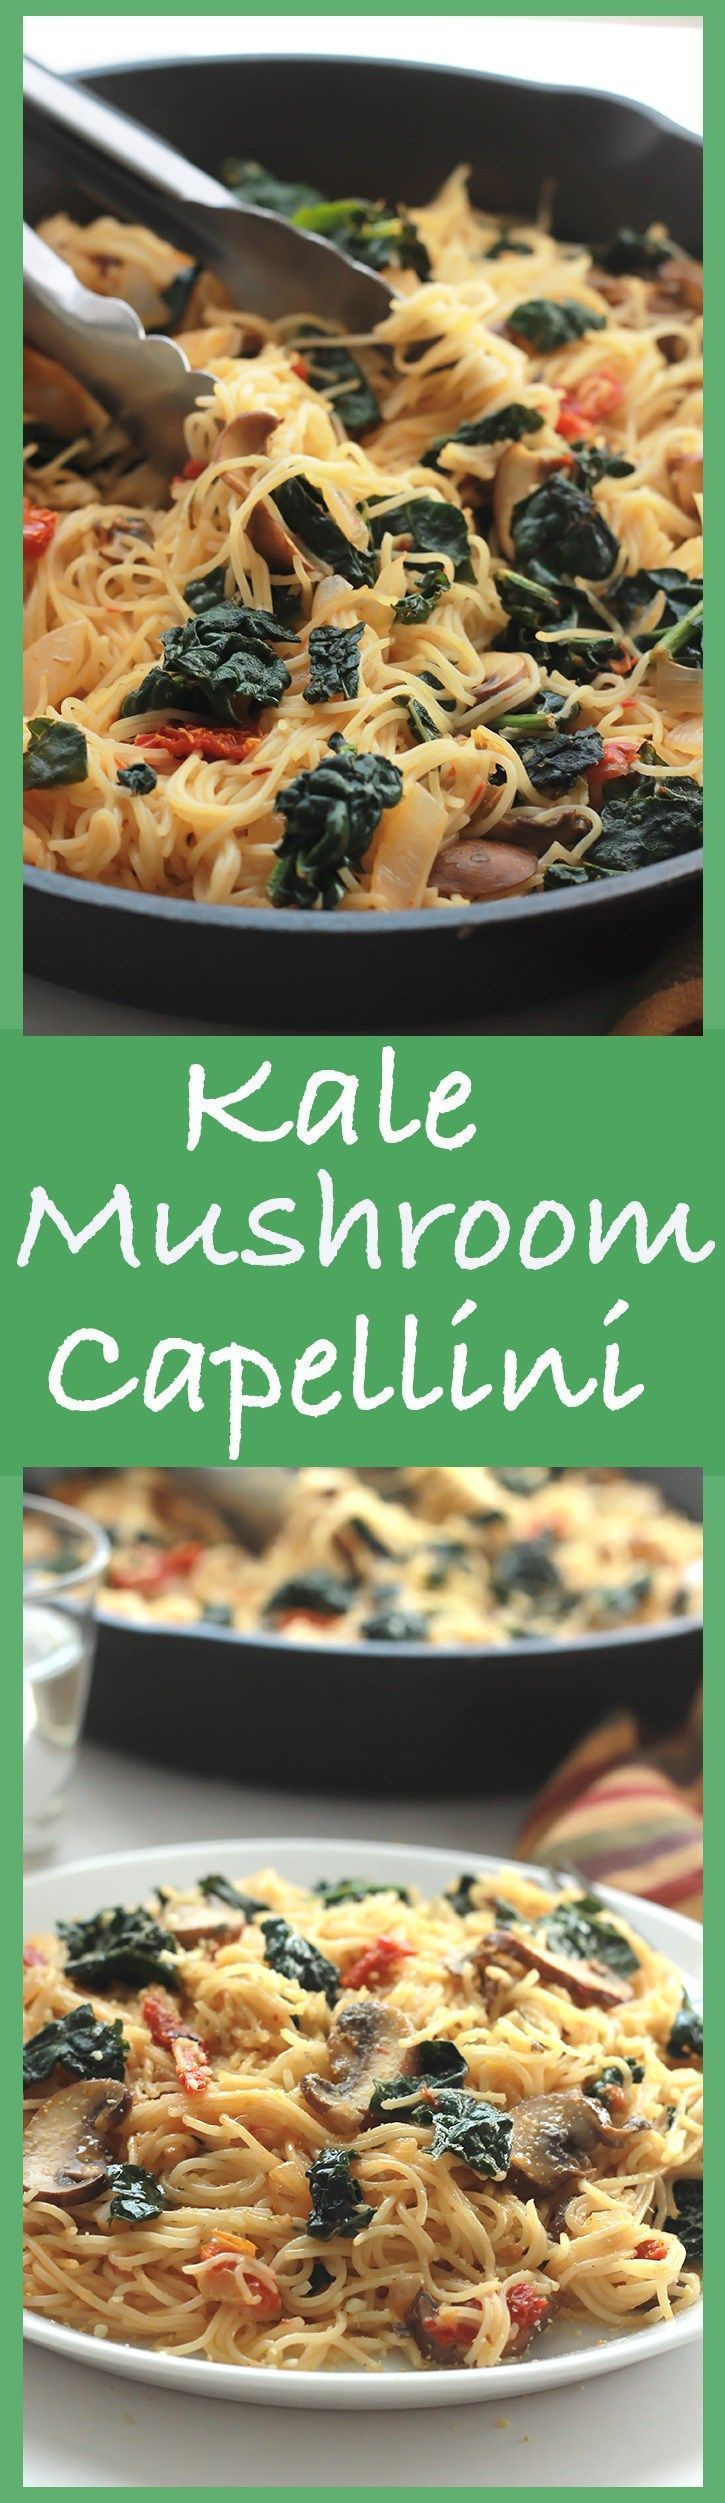 Simple, easy, full of flavor and ready in minutes. This Kale Mushroom Capellini will satisfy everyone at the dinner table!